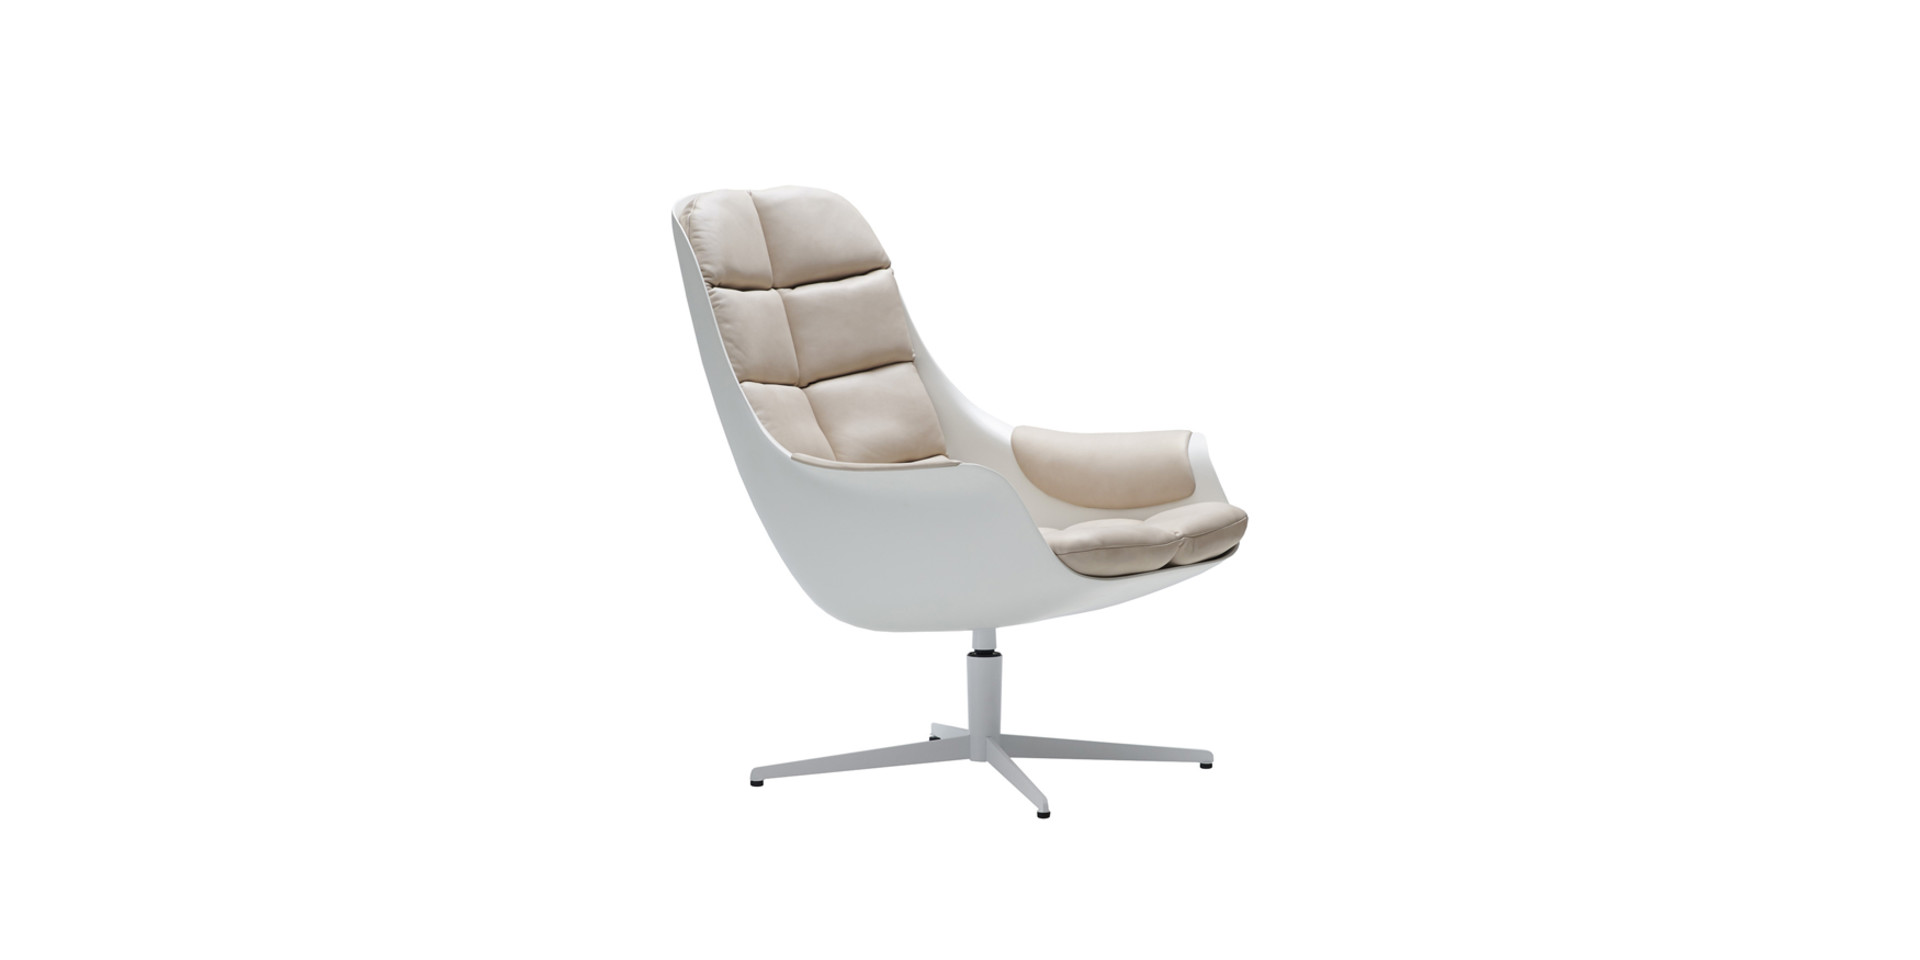 MYBIRD_armchair_swivel_white_aniline_nature_2